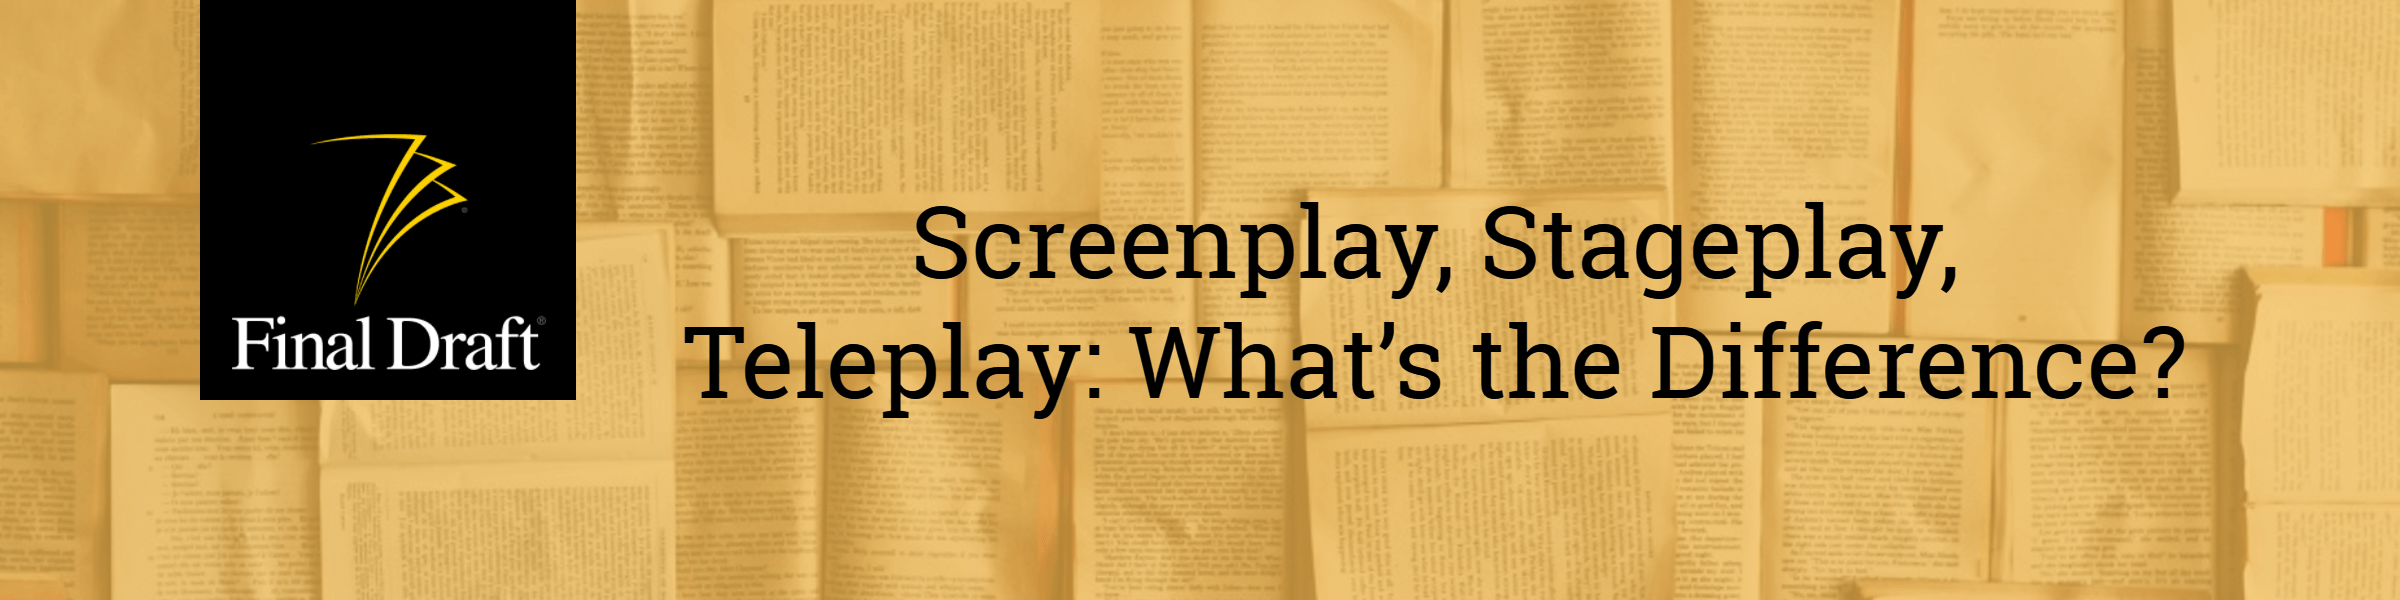 difference between screenplay teleplay and stage play final draft